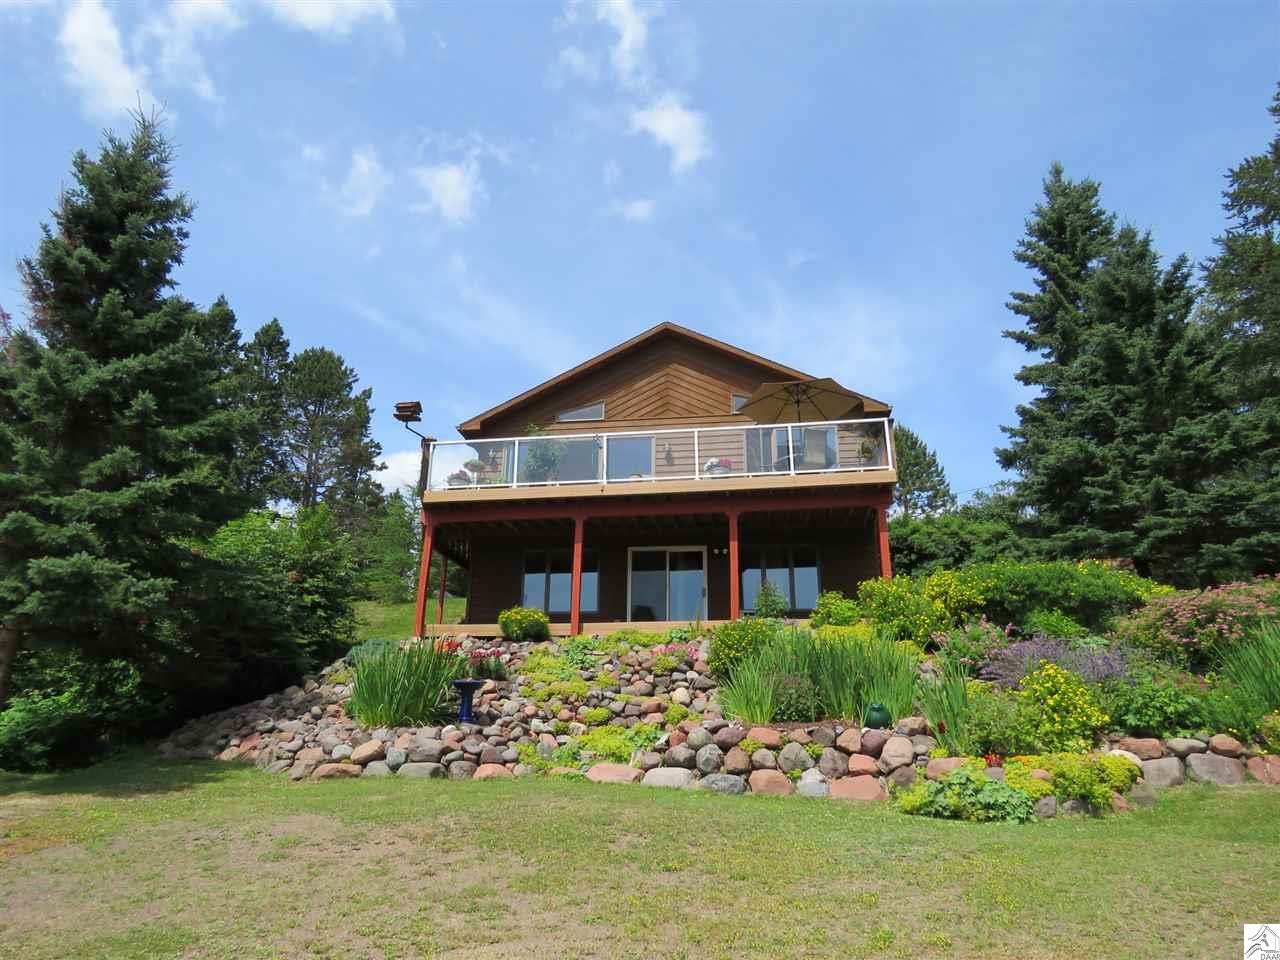 6870 W Highway 61, Tofte, MN 55615